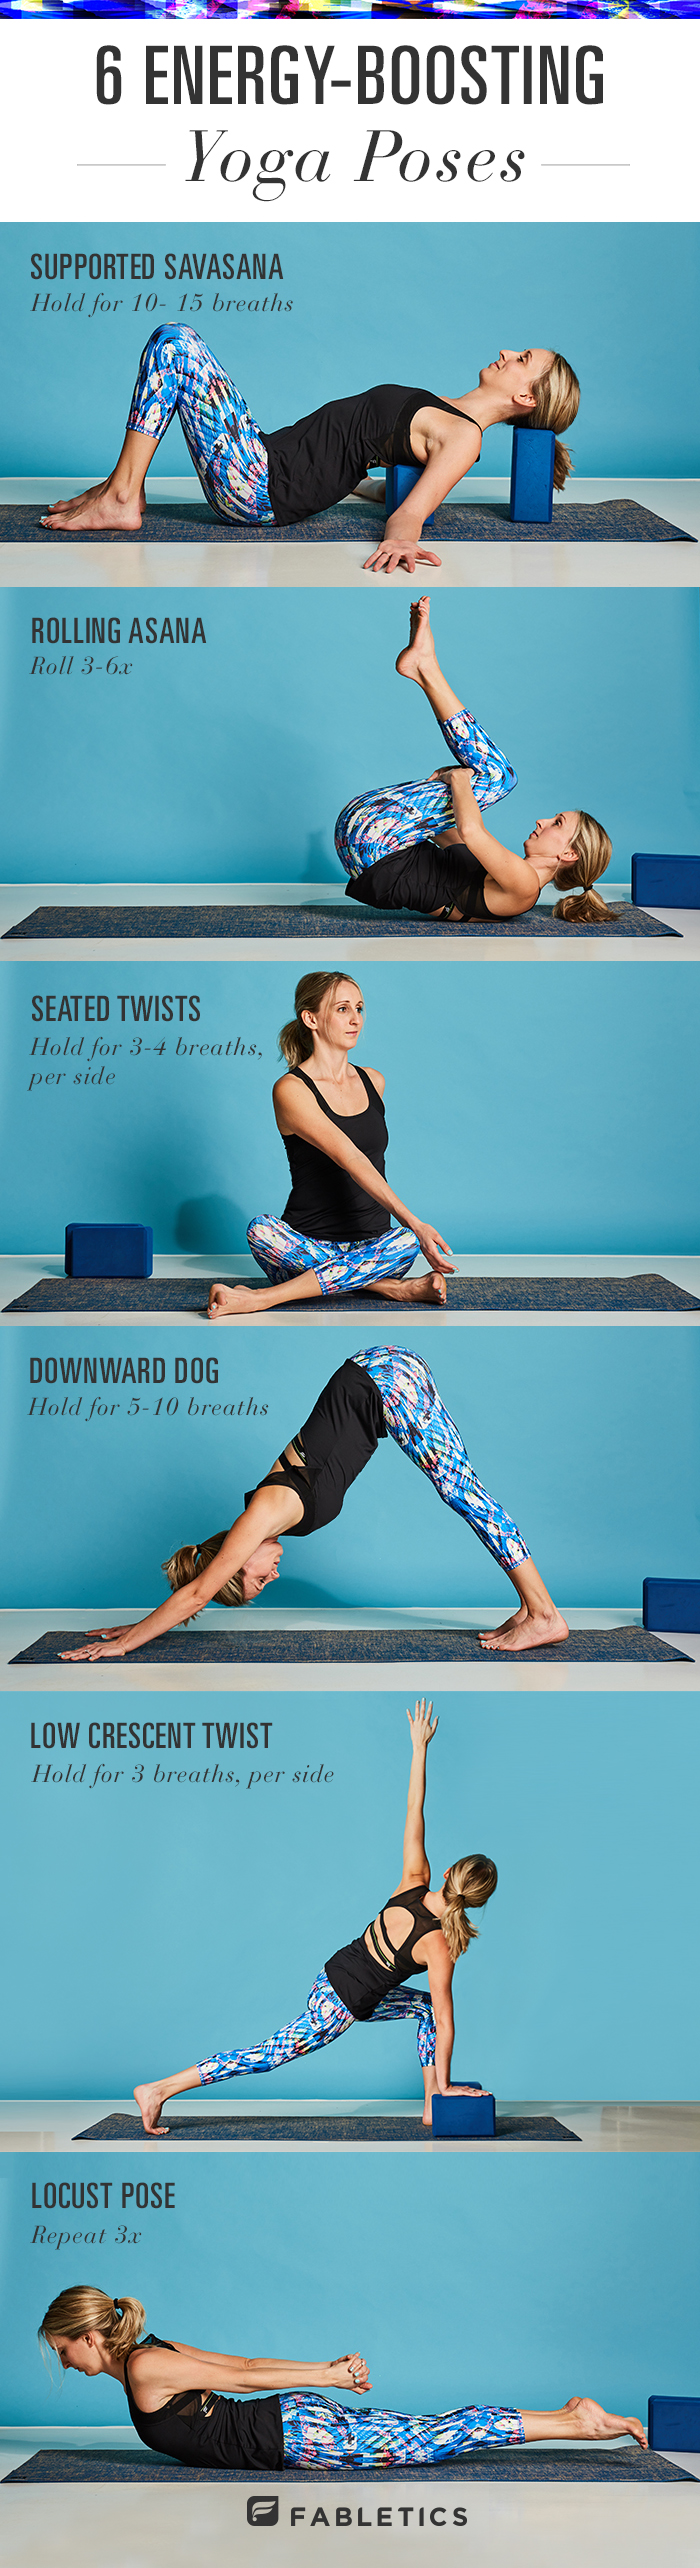 6 Yoga Poses That Boost Energy The Fabletics Blog In 2021 Energy Yoga Yoga Poses Just Breathe Yoga